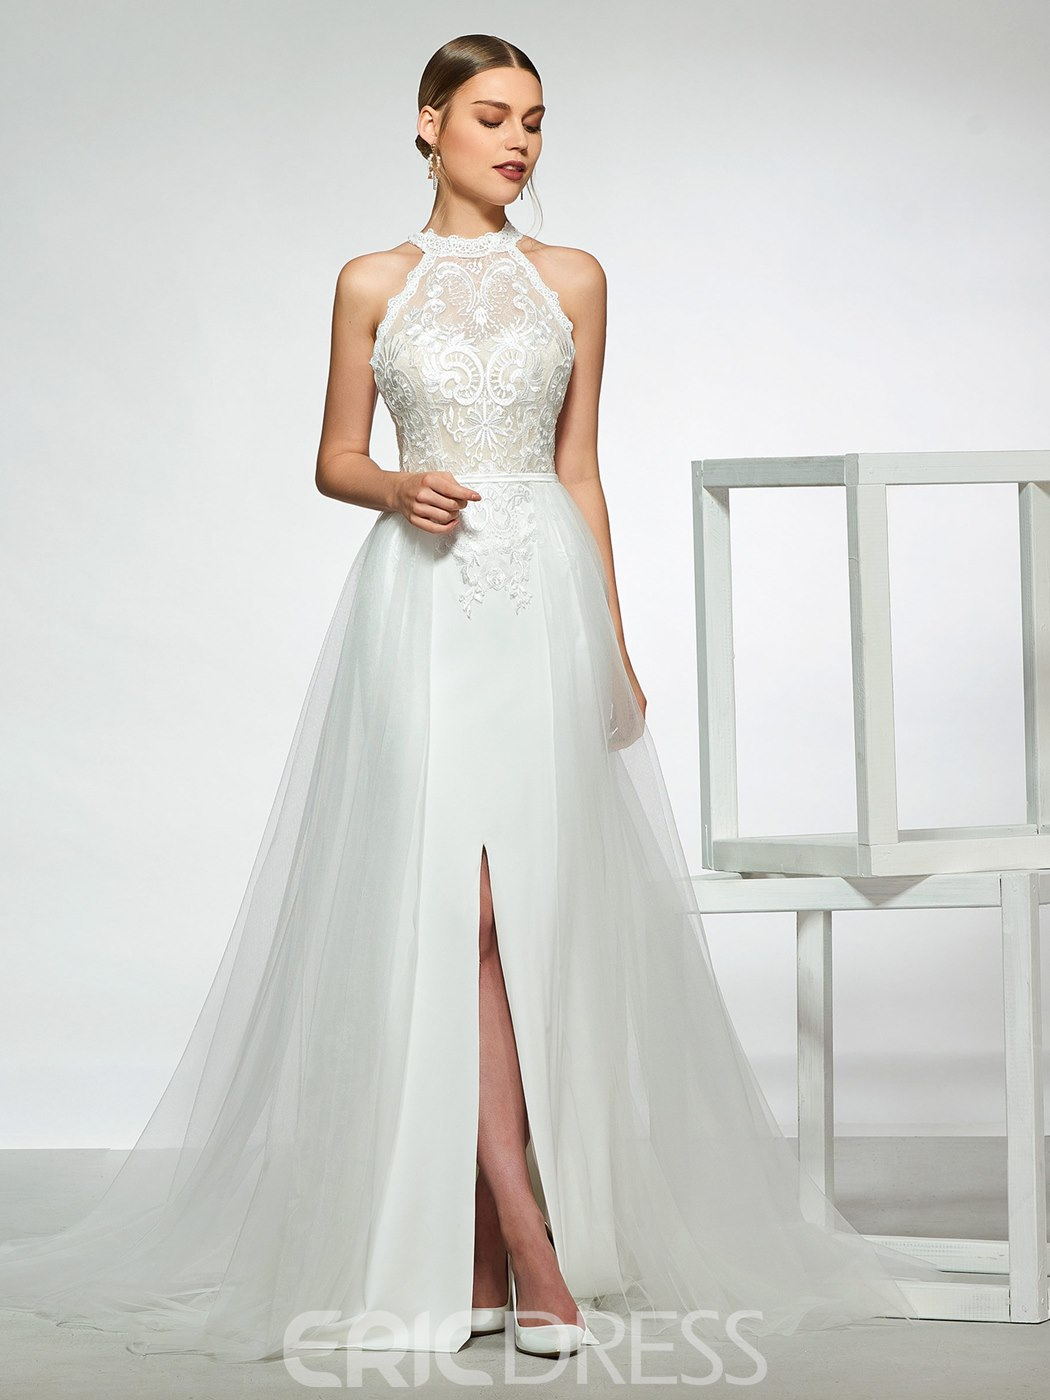 d22c2770 Ericdress Halter Split-Front Lace Wedding Dress 2019 13777506 ...